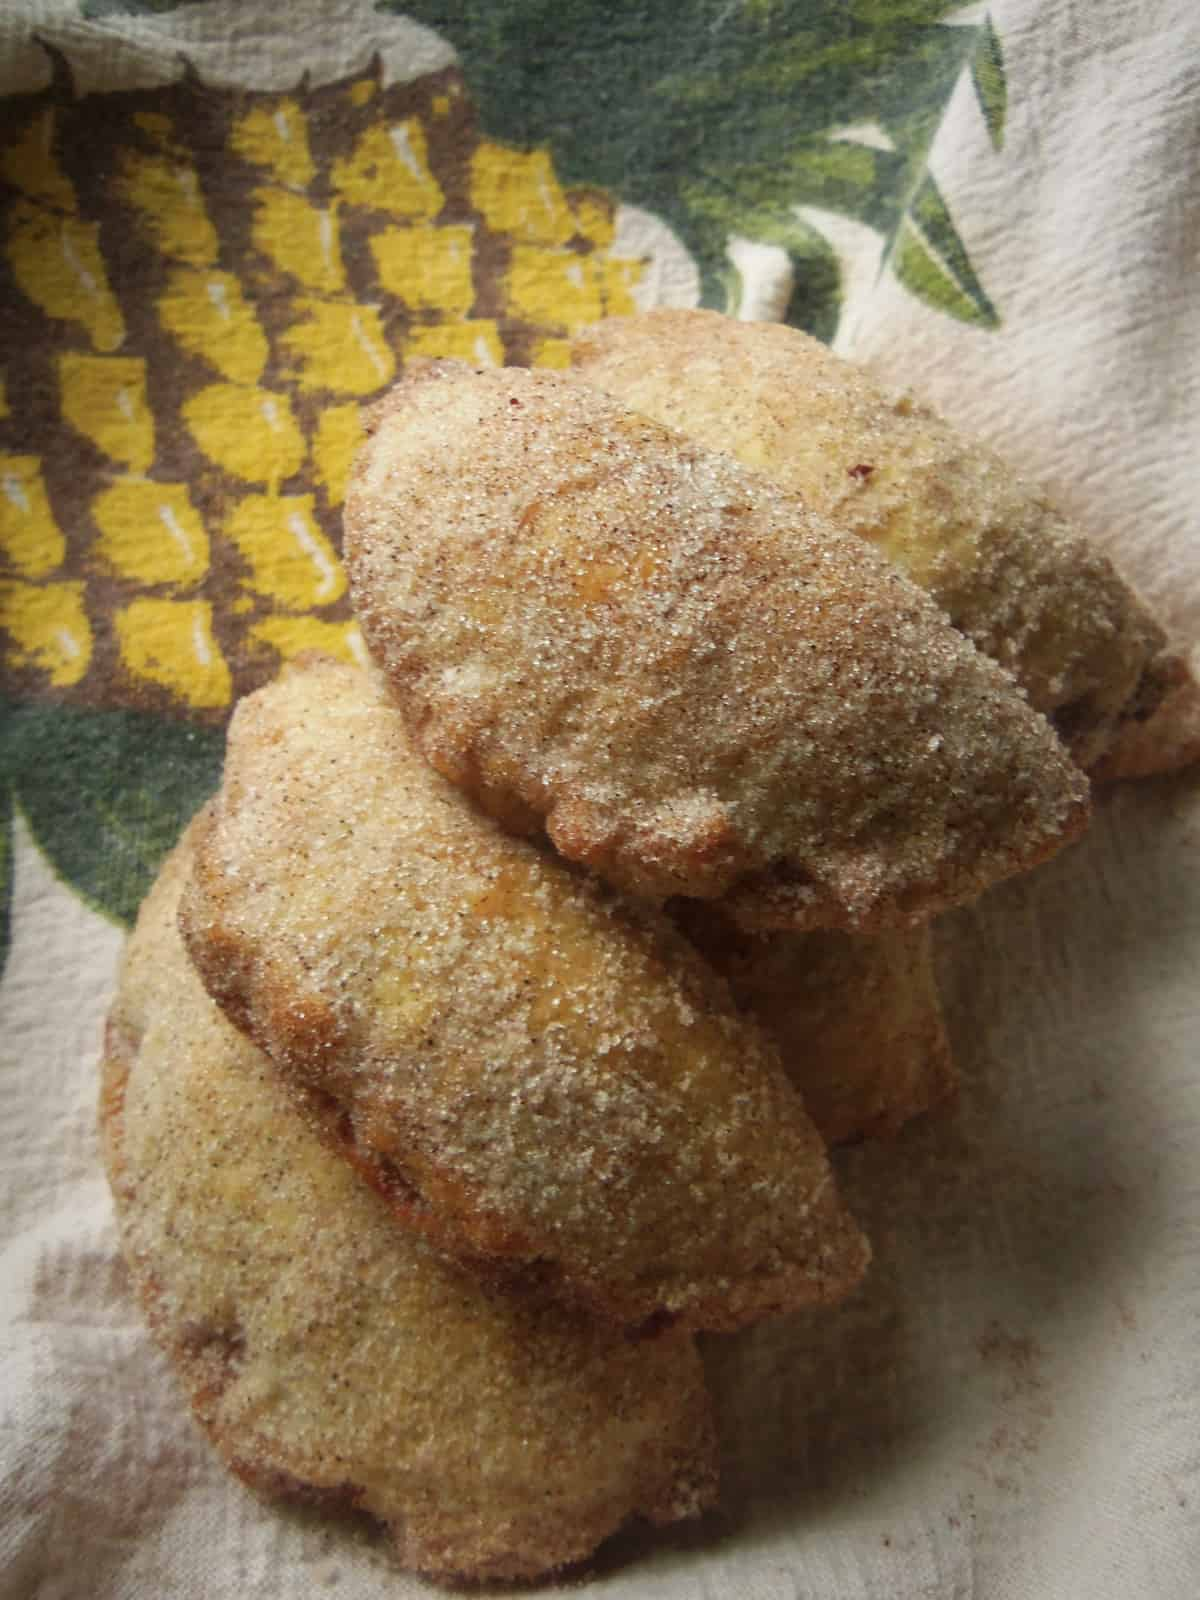 Empanadas de Piña Dredged in Cinnamon and Sugar